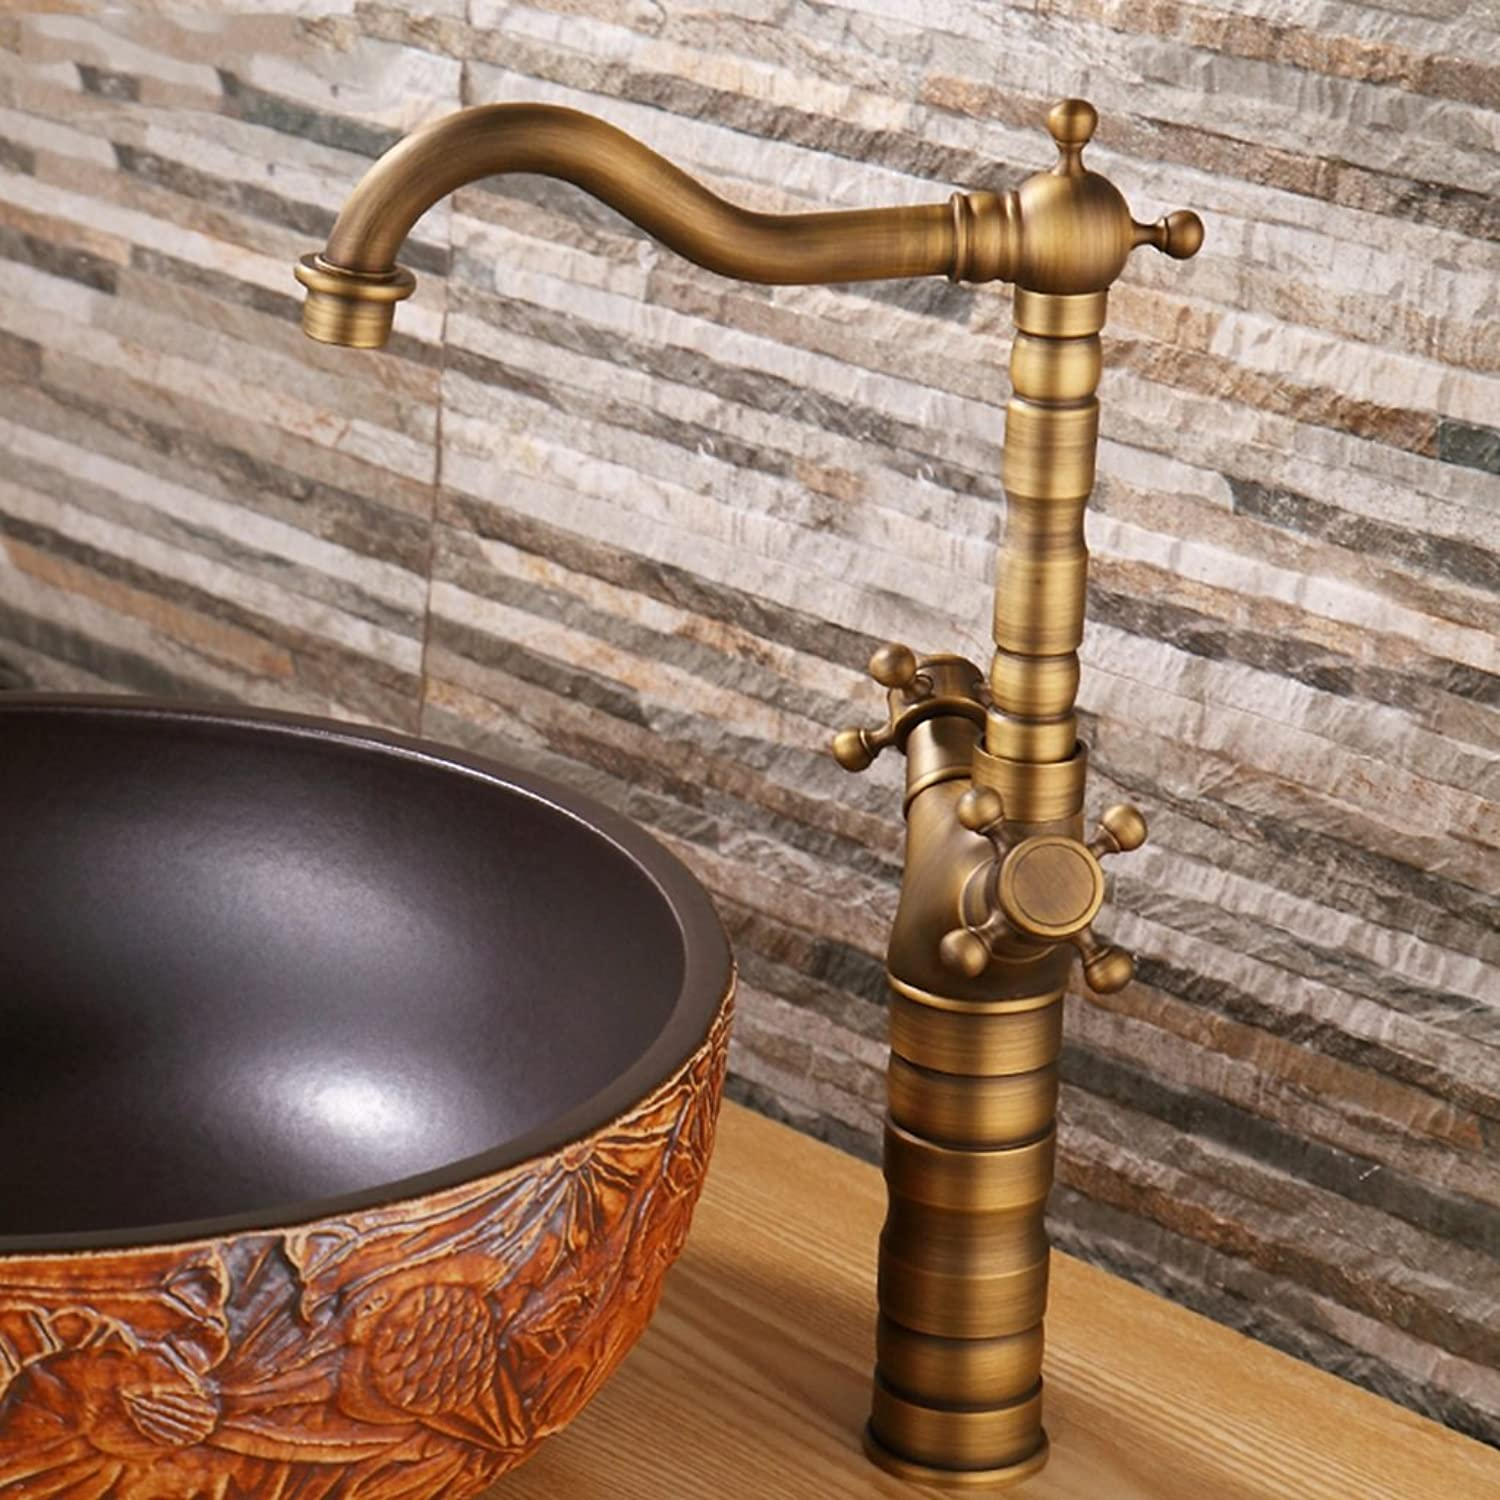 Bathroom Basin Taps Vintage faucet faucet faucet bathroom faucet full copper basin faucet hot and cold water bathroom basin faucet waterfall faucet full copper hot and cold water basin faucet antique double the platform basin artistic basin wash basin bas